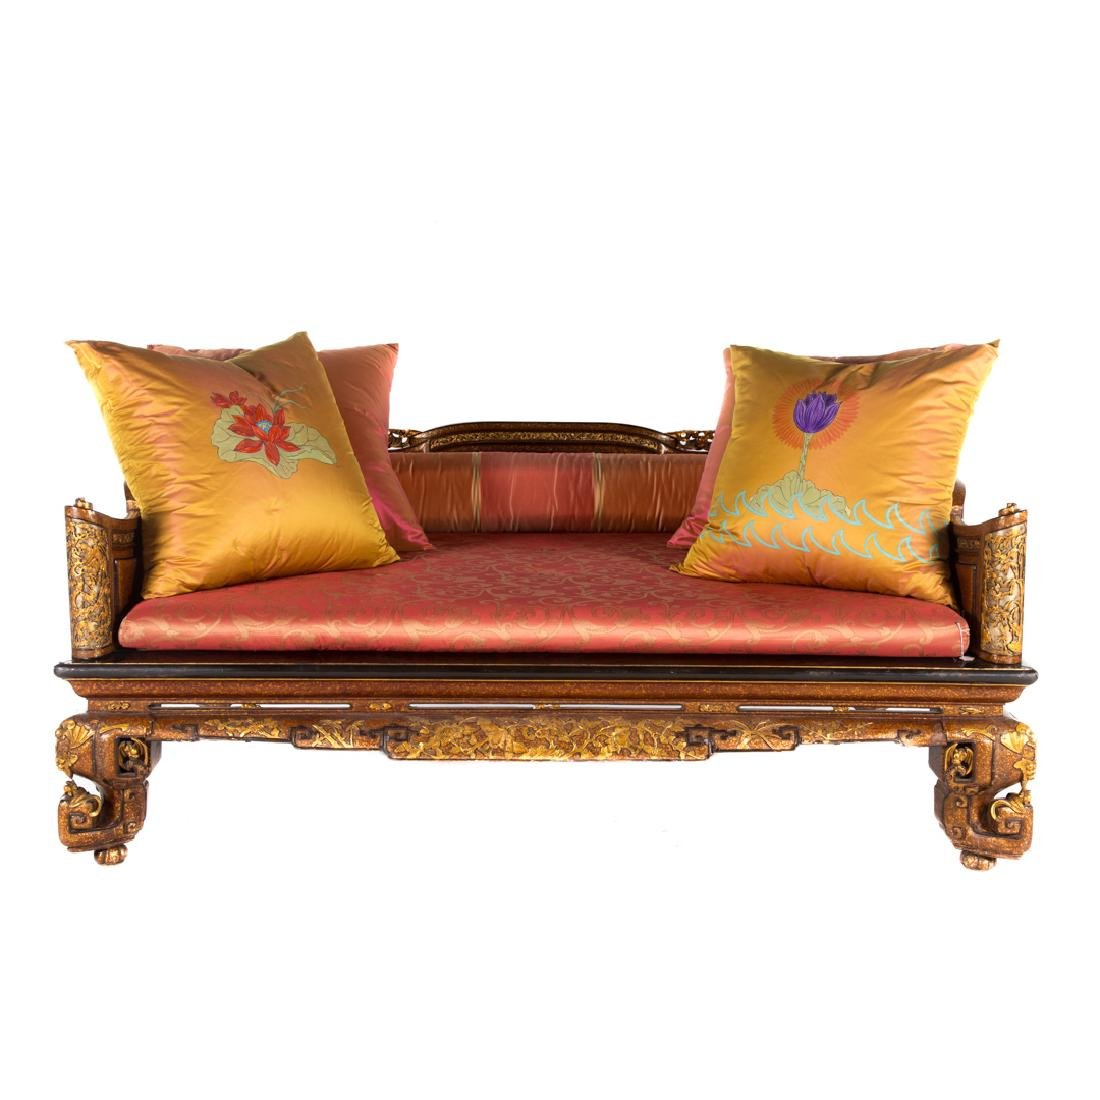 Chinese carved & lacquered wood opium bed